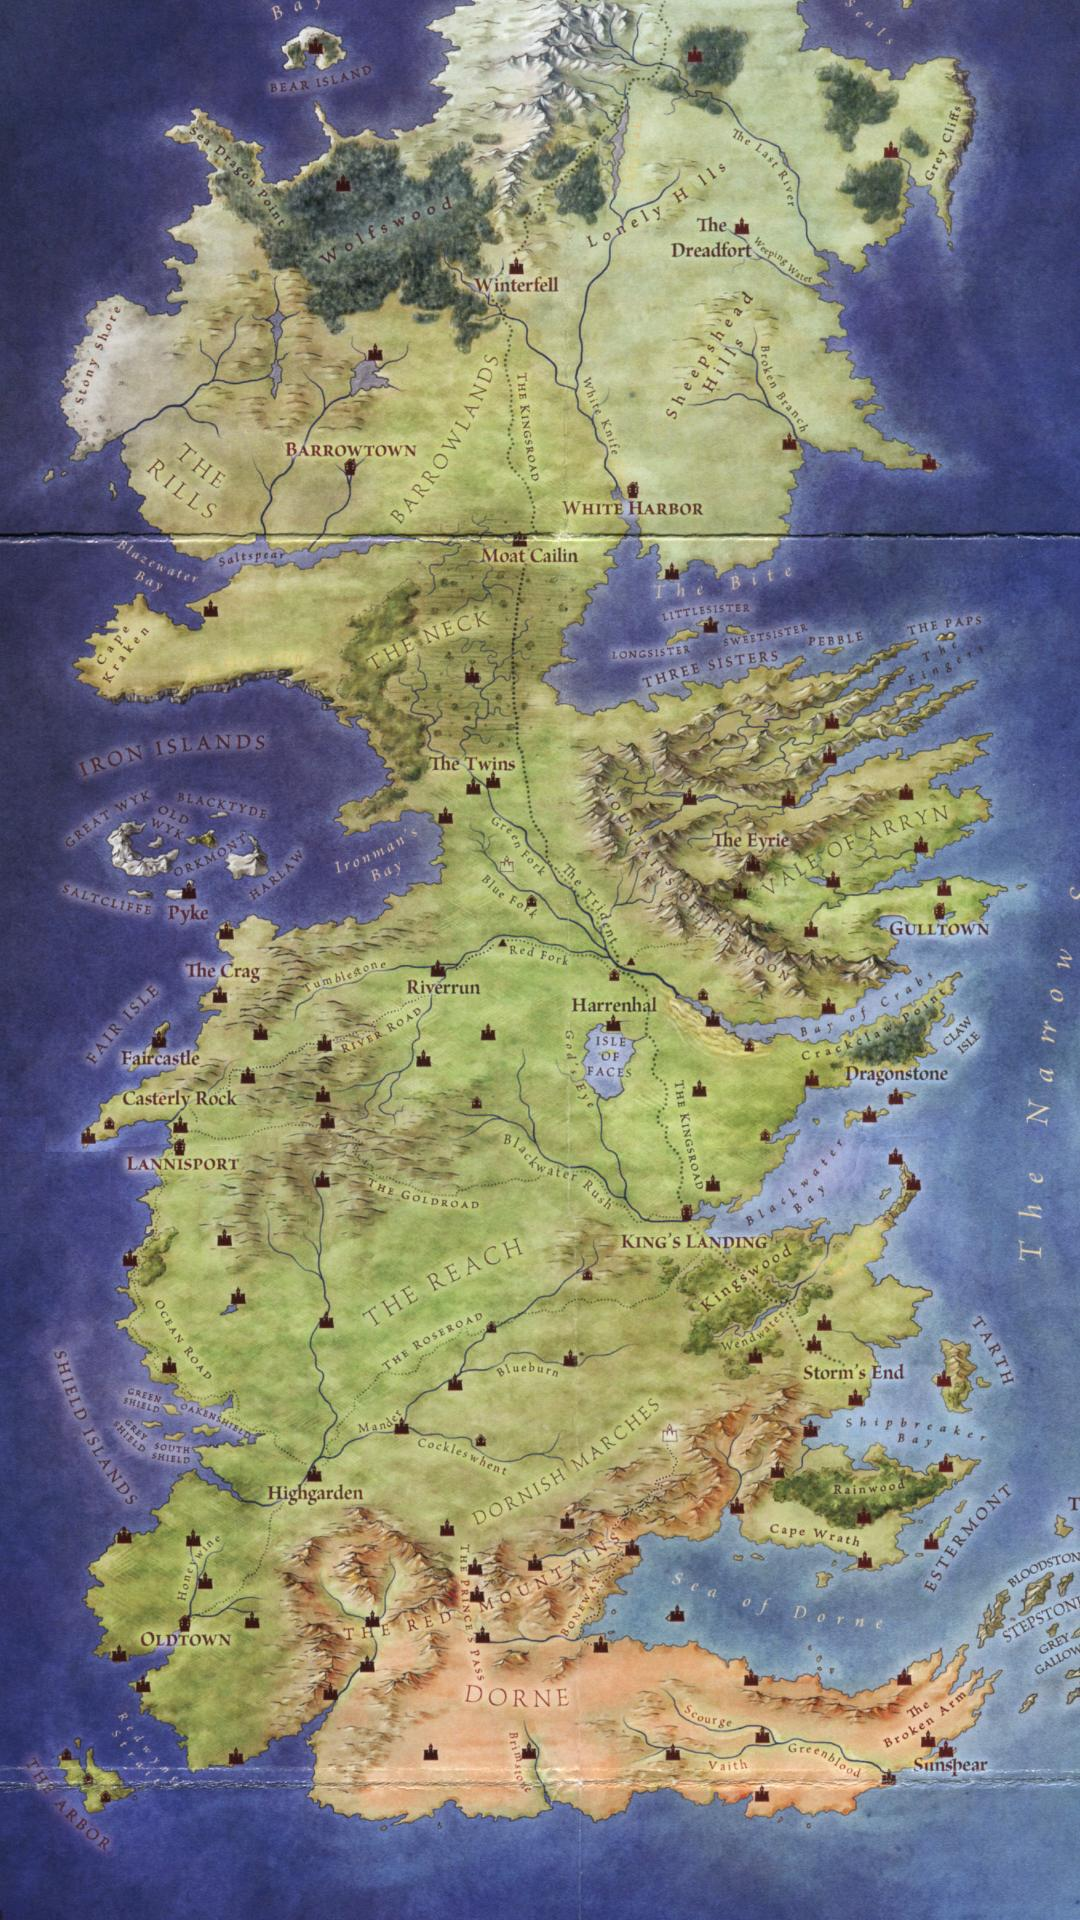 Game of Thrones Map Wallpapers - Top Free Game of Thrones ...